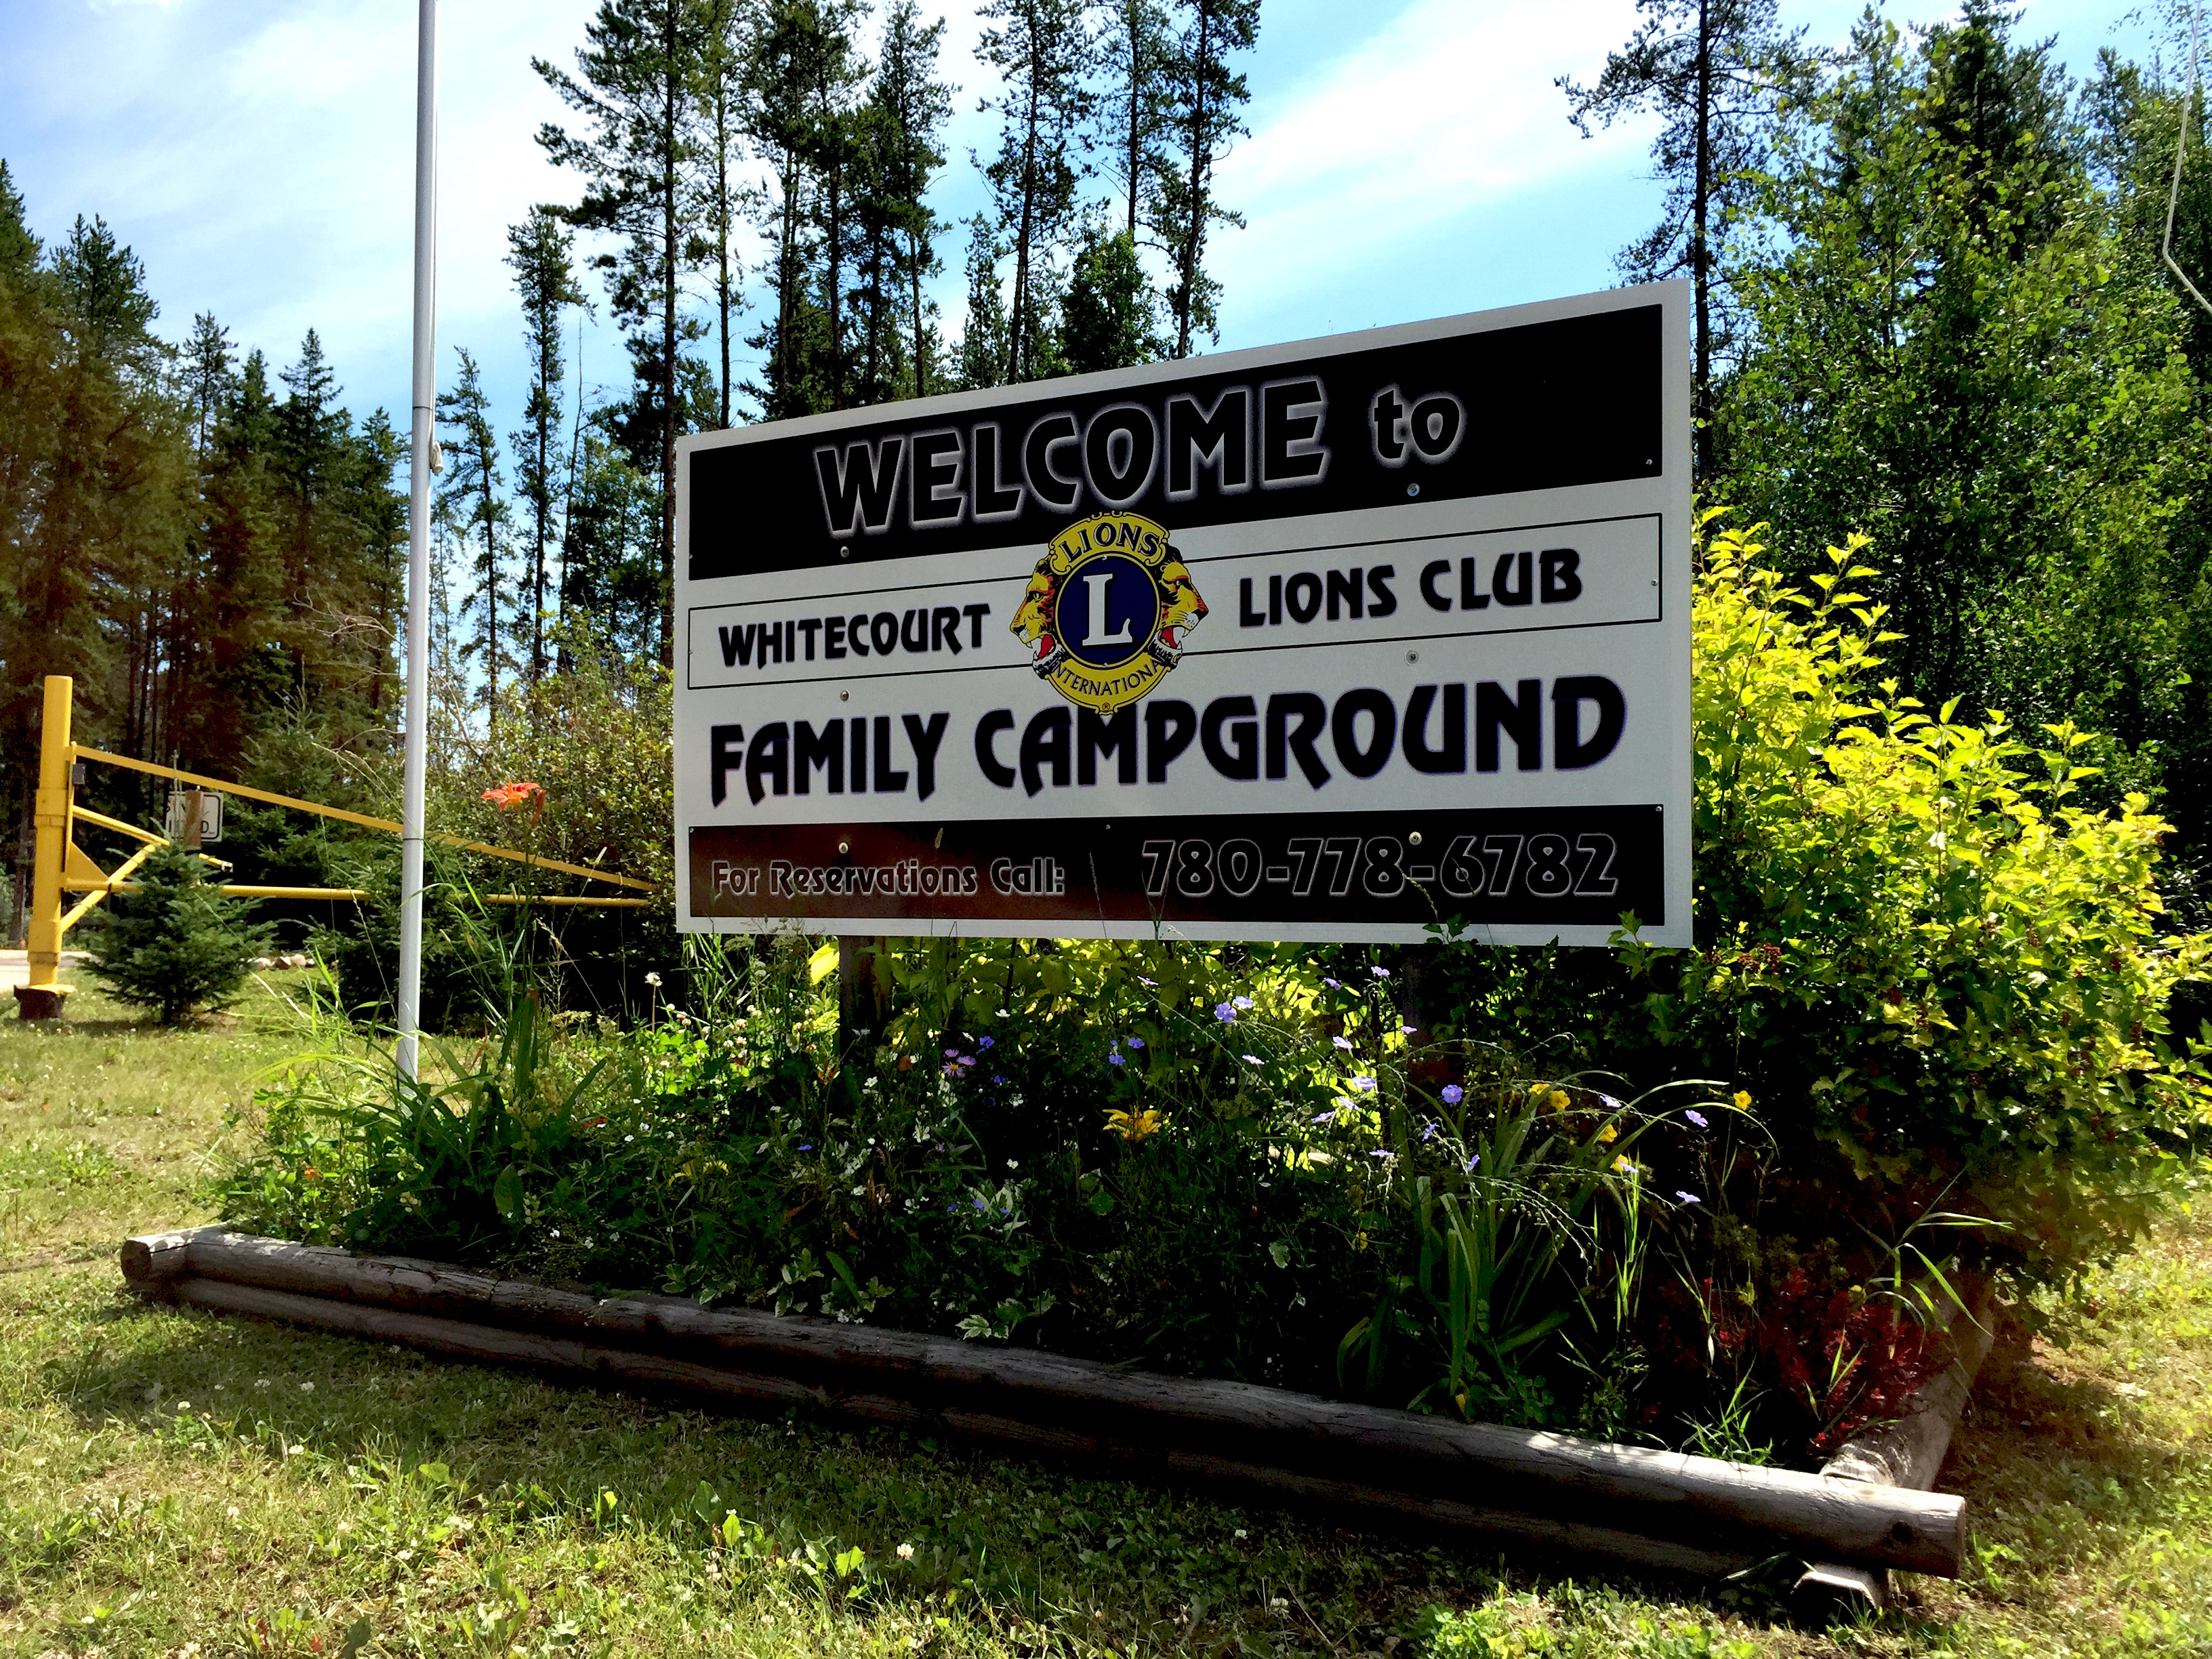 Whitecourt Lions Campground - Affordable Camping in Whitecourt, Alberta. Full Service RV Campsites